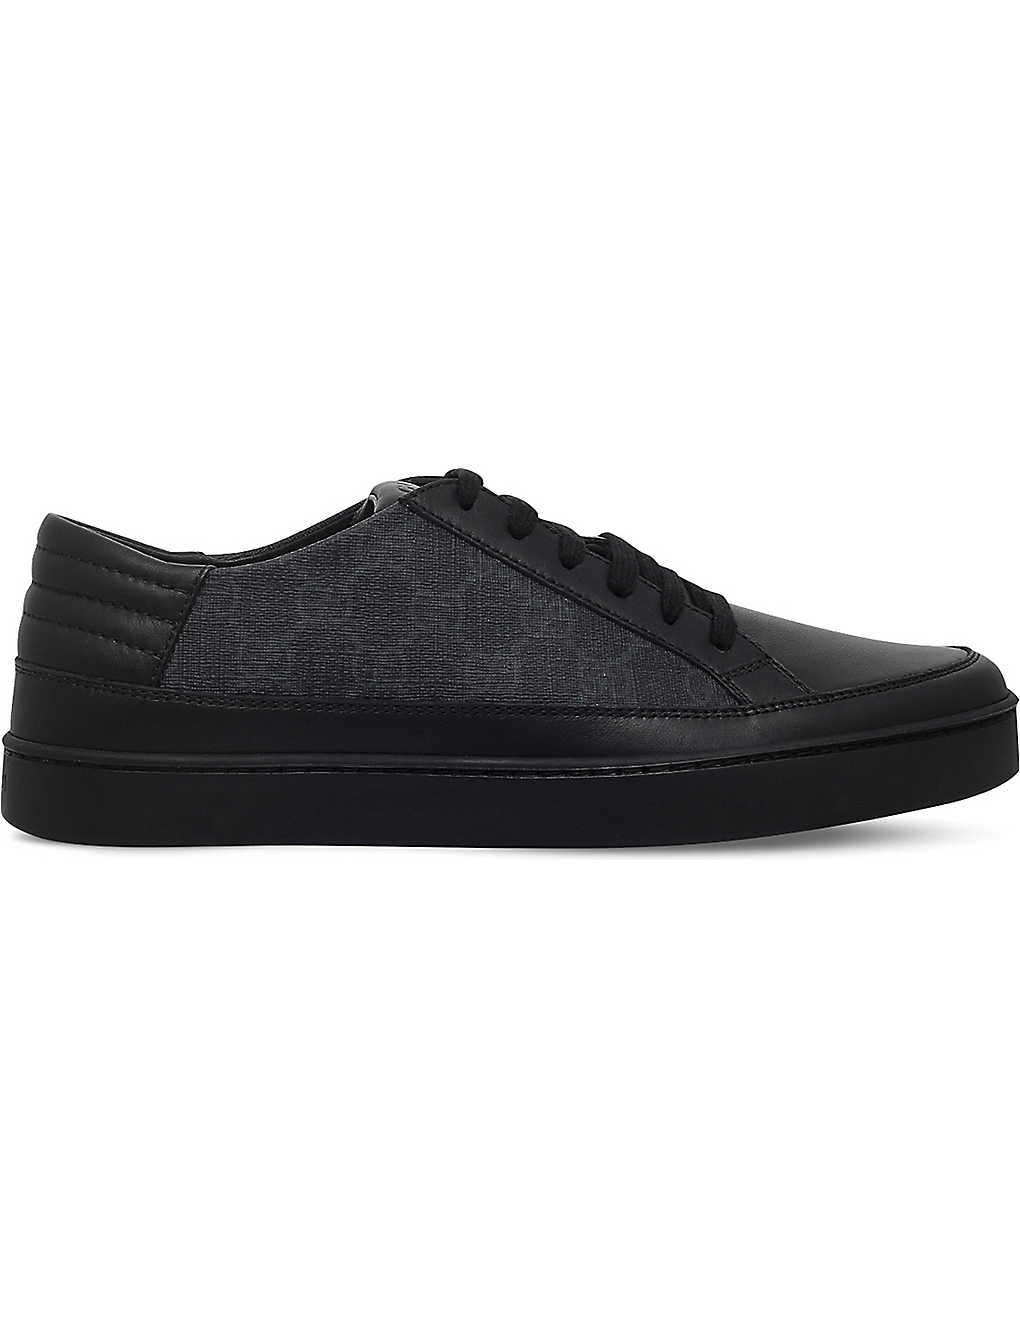 9eaef172d46 GUCCI - Common GG low-top trainers